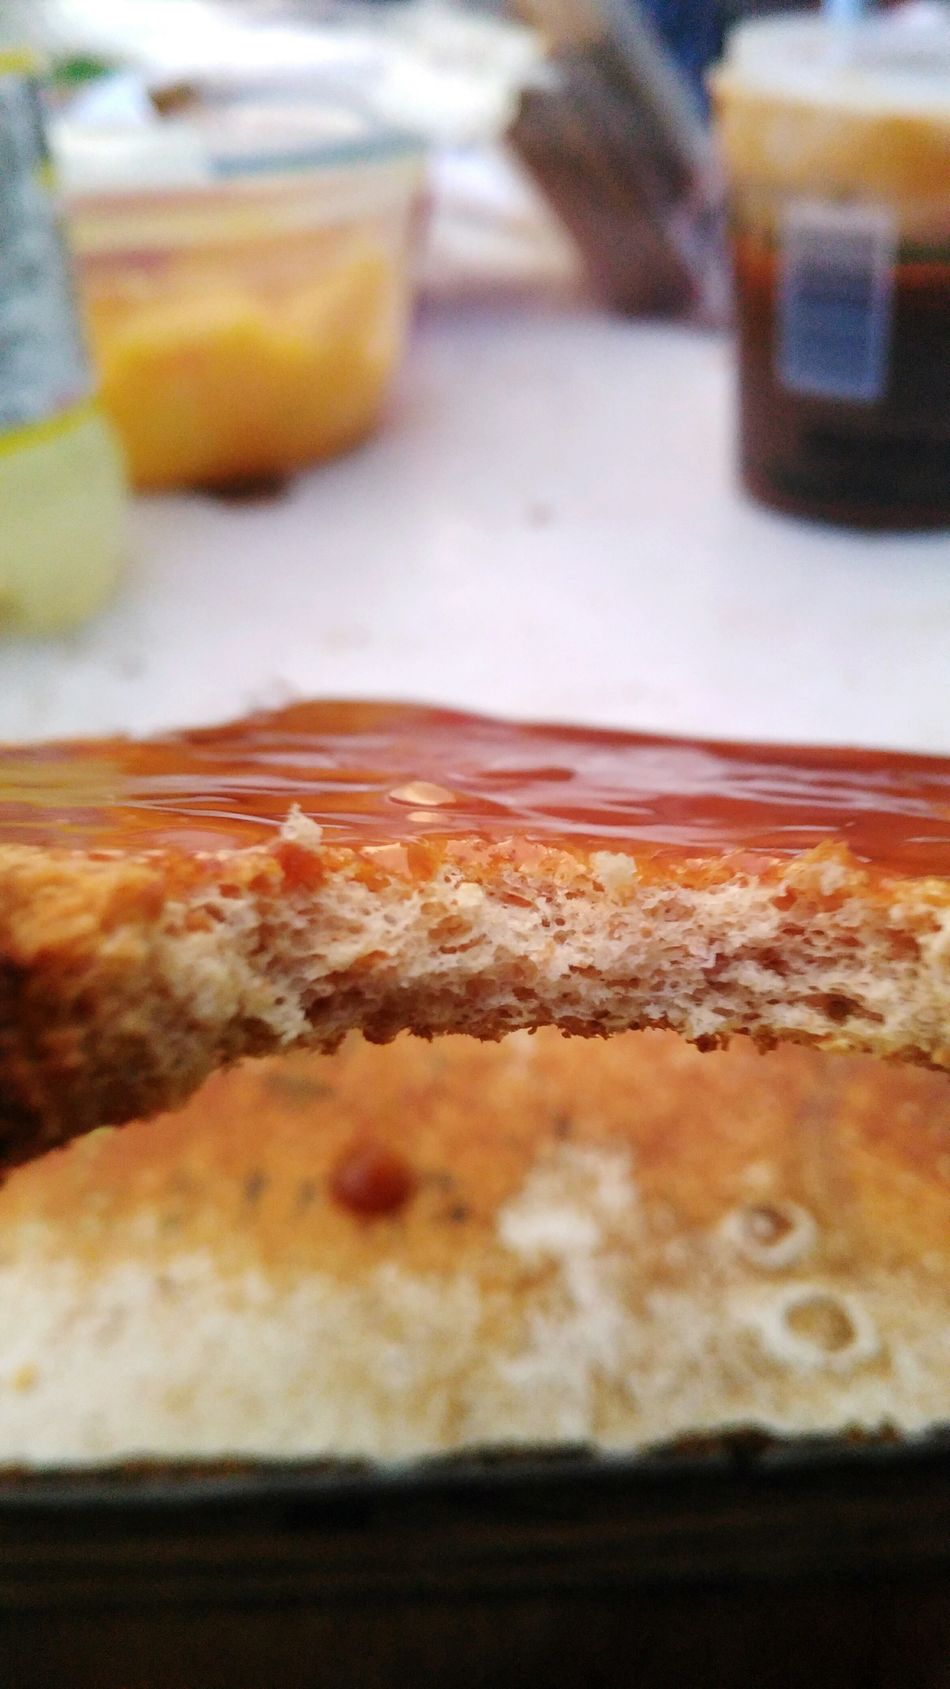 French Toast topped with Caramel. It was delicious, but messy. Breafkfast Lunch Dinner Food Table Toast🍞